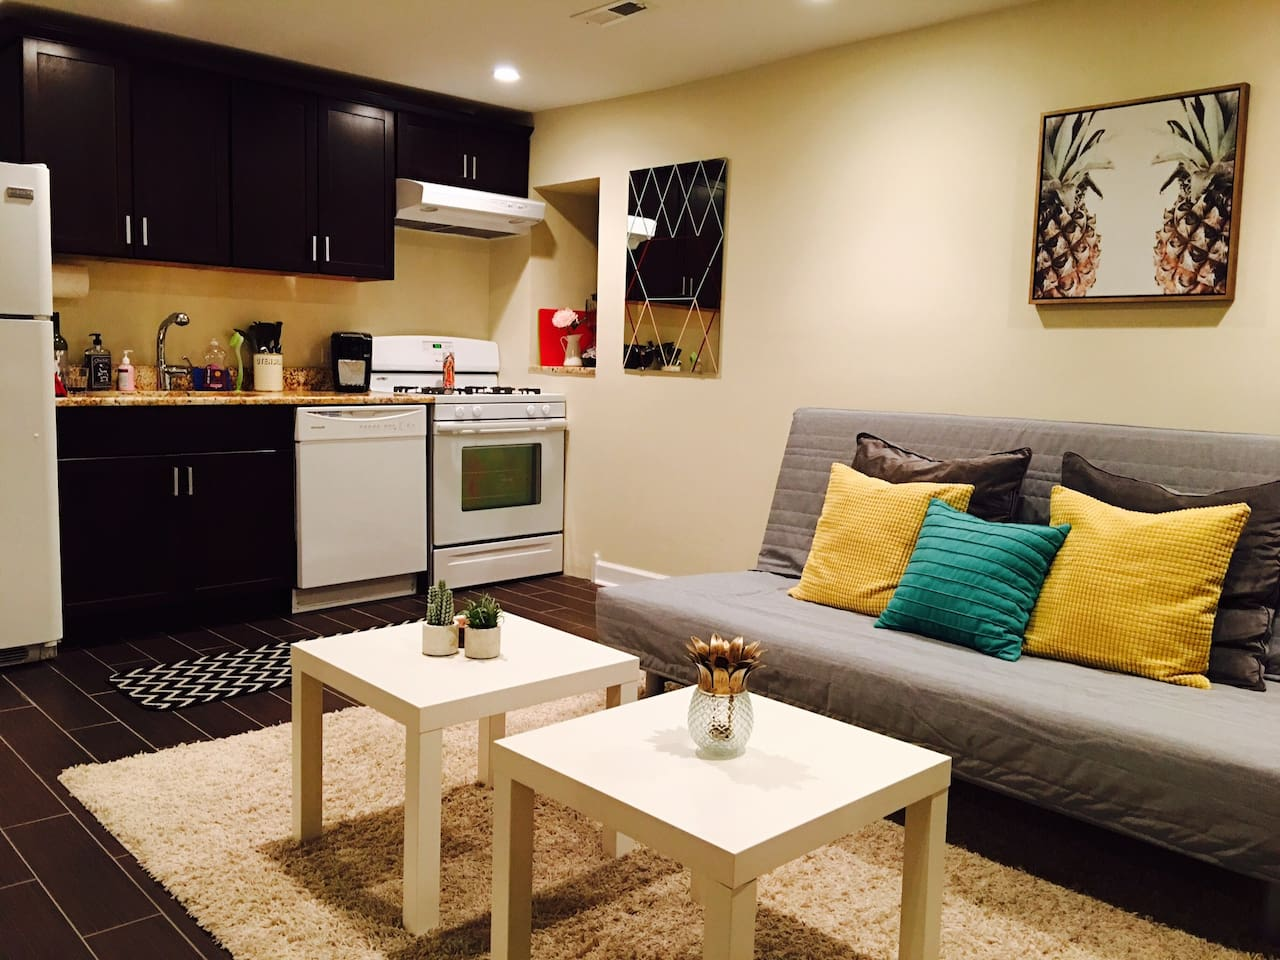 Newly renovated garden apartment in Pilsen. Brand new appliances and furniture!